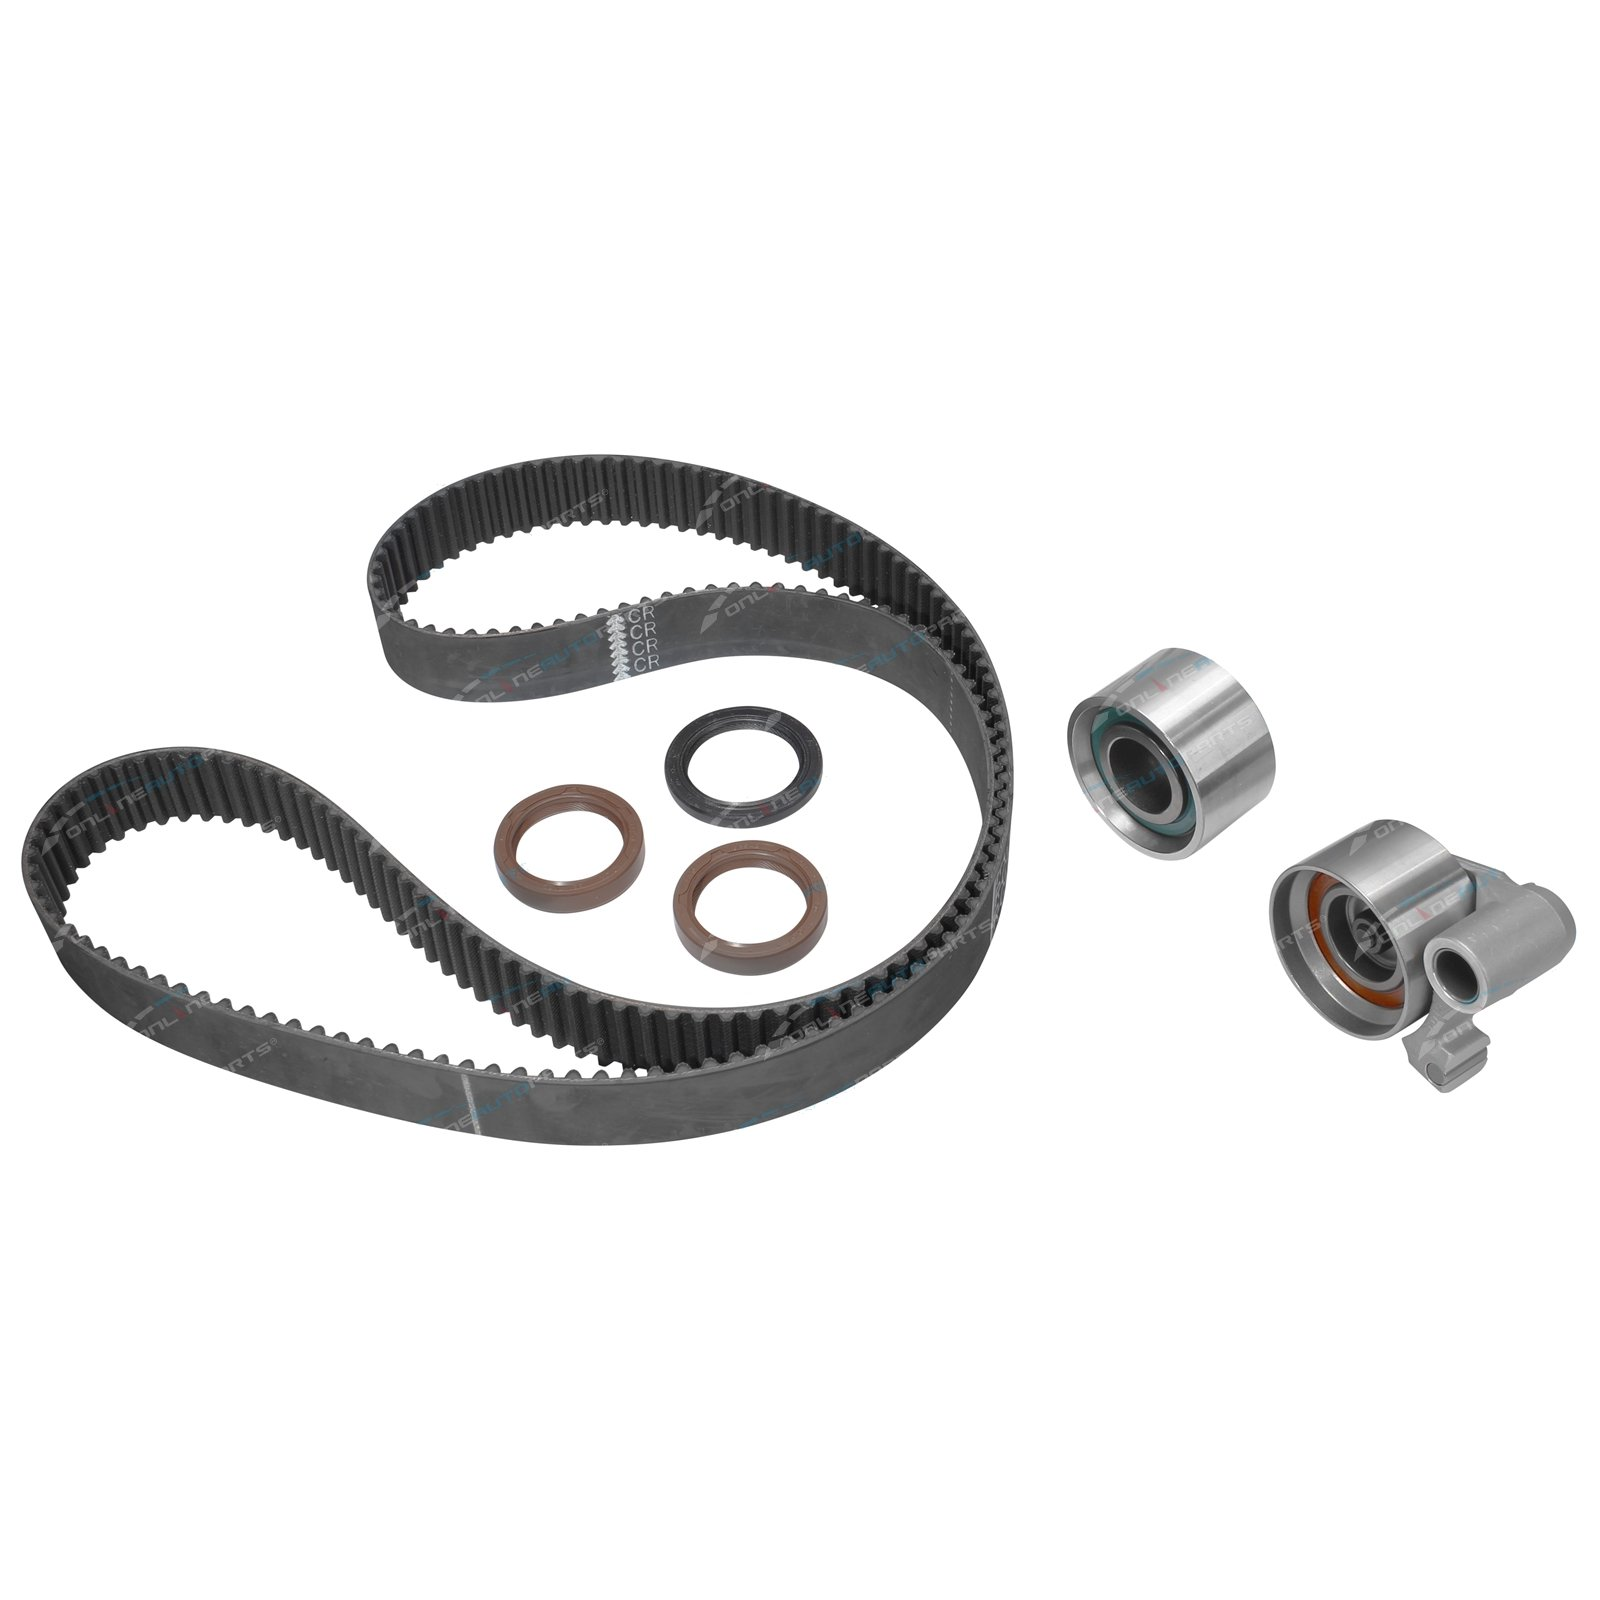 Timing Belt + Tensioner Kit suits Toyota Camry SXV10R VCV10R VDV10 3VZ-FE 3.0L Vienta Petrol Engine 1993 1994 1995 1996 1997